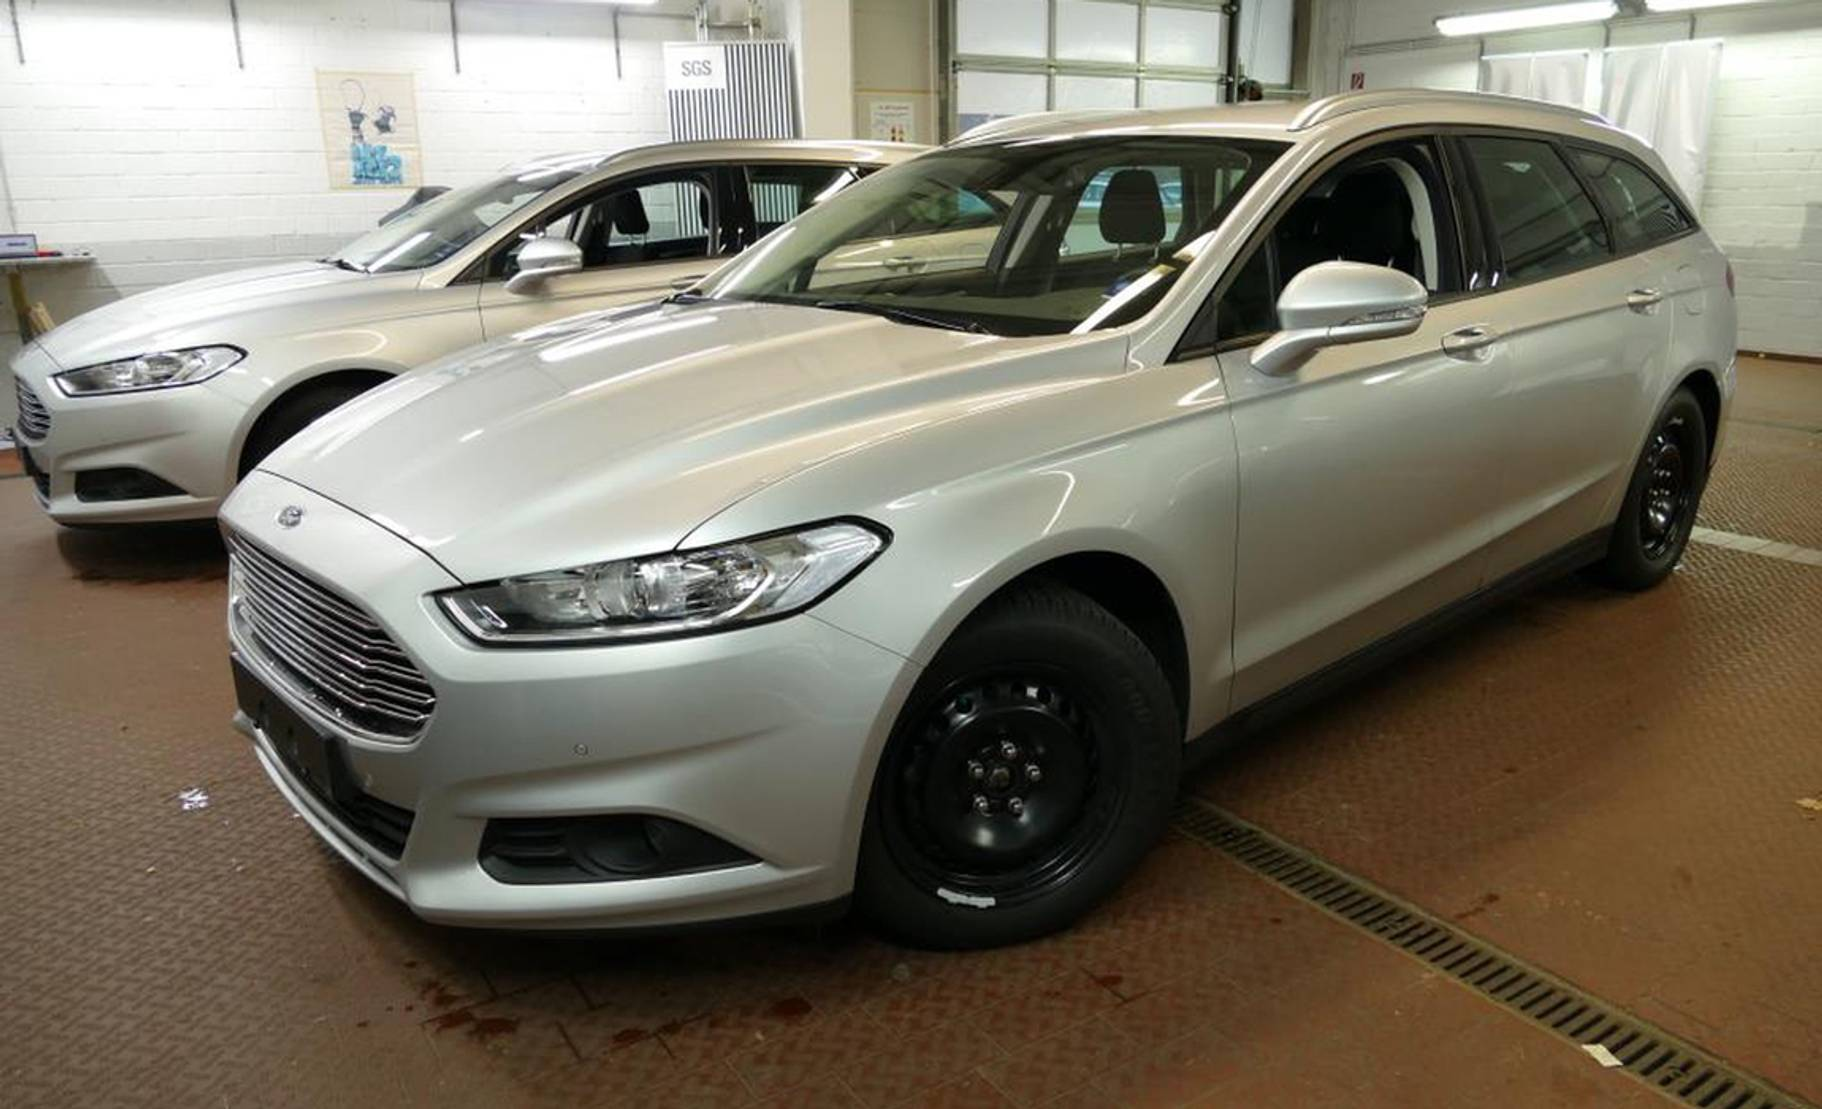 Ford Mondeo Turnier 2.0TDCi BusinessEdition STANDHZG detail1